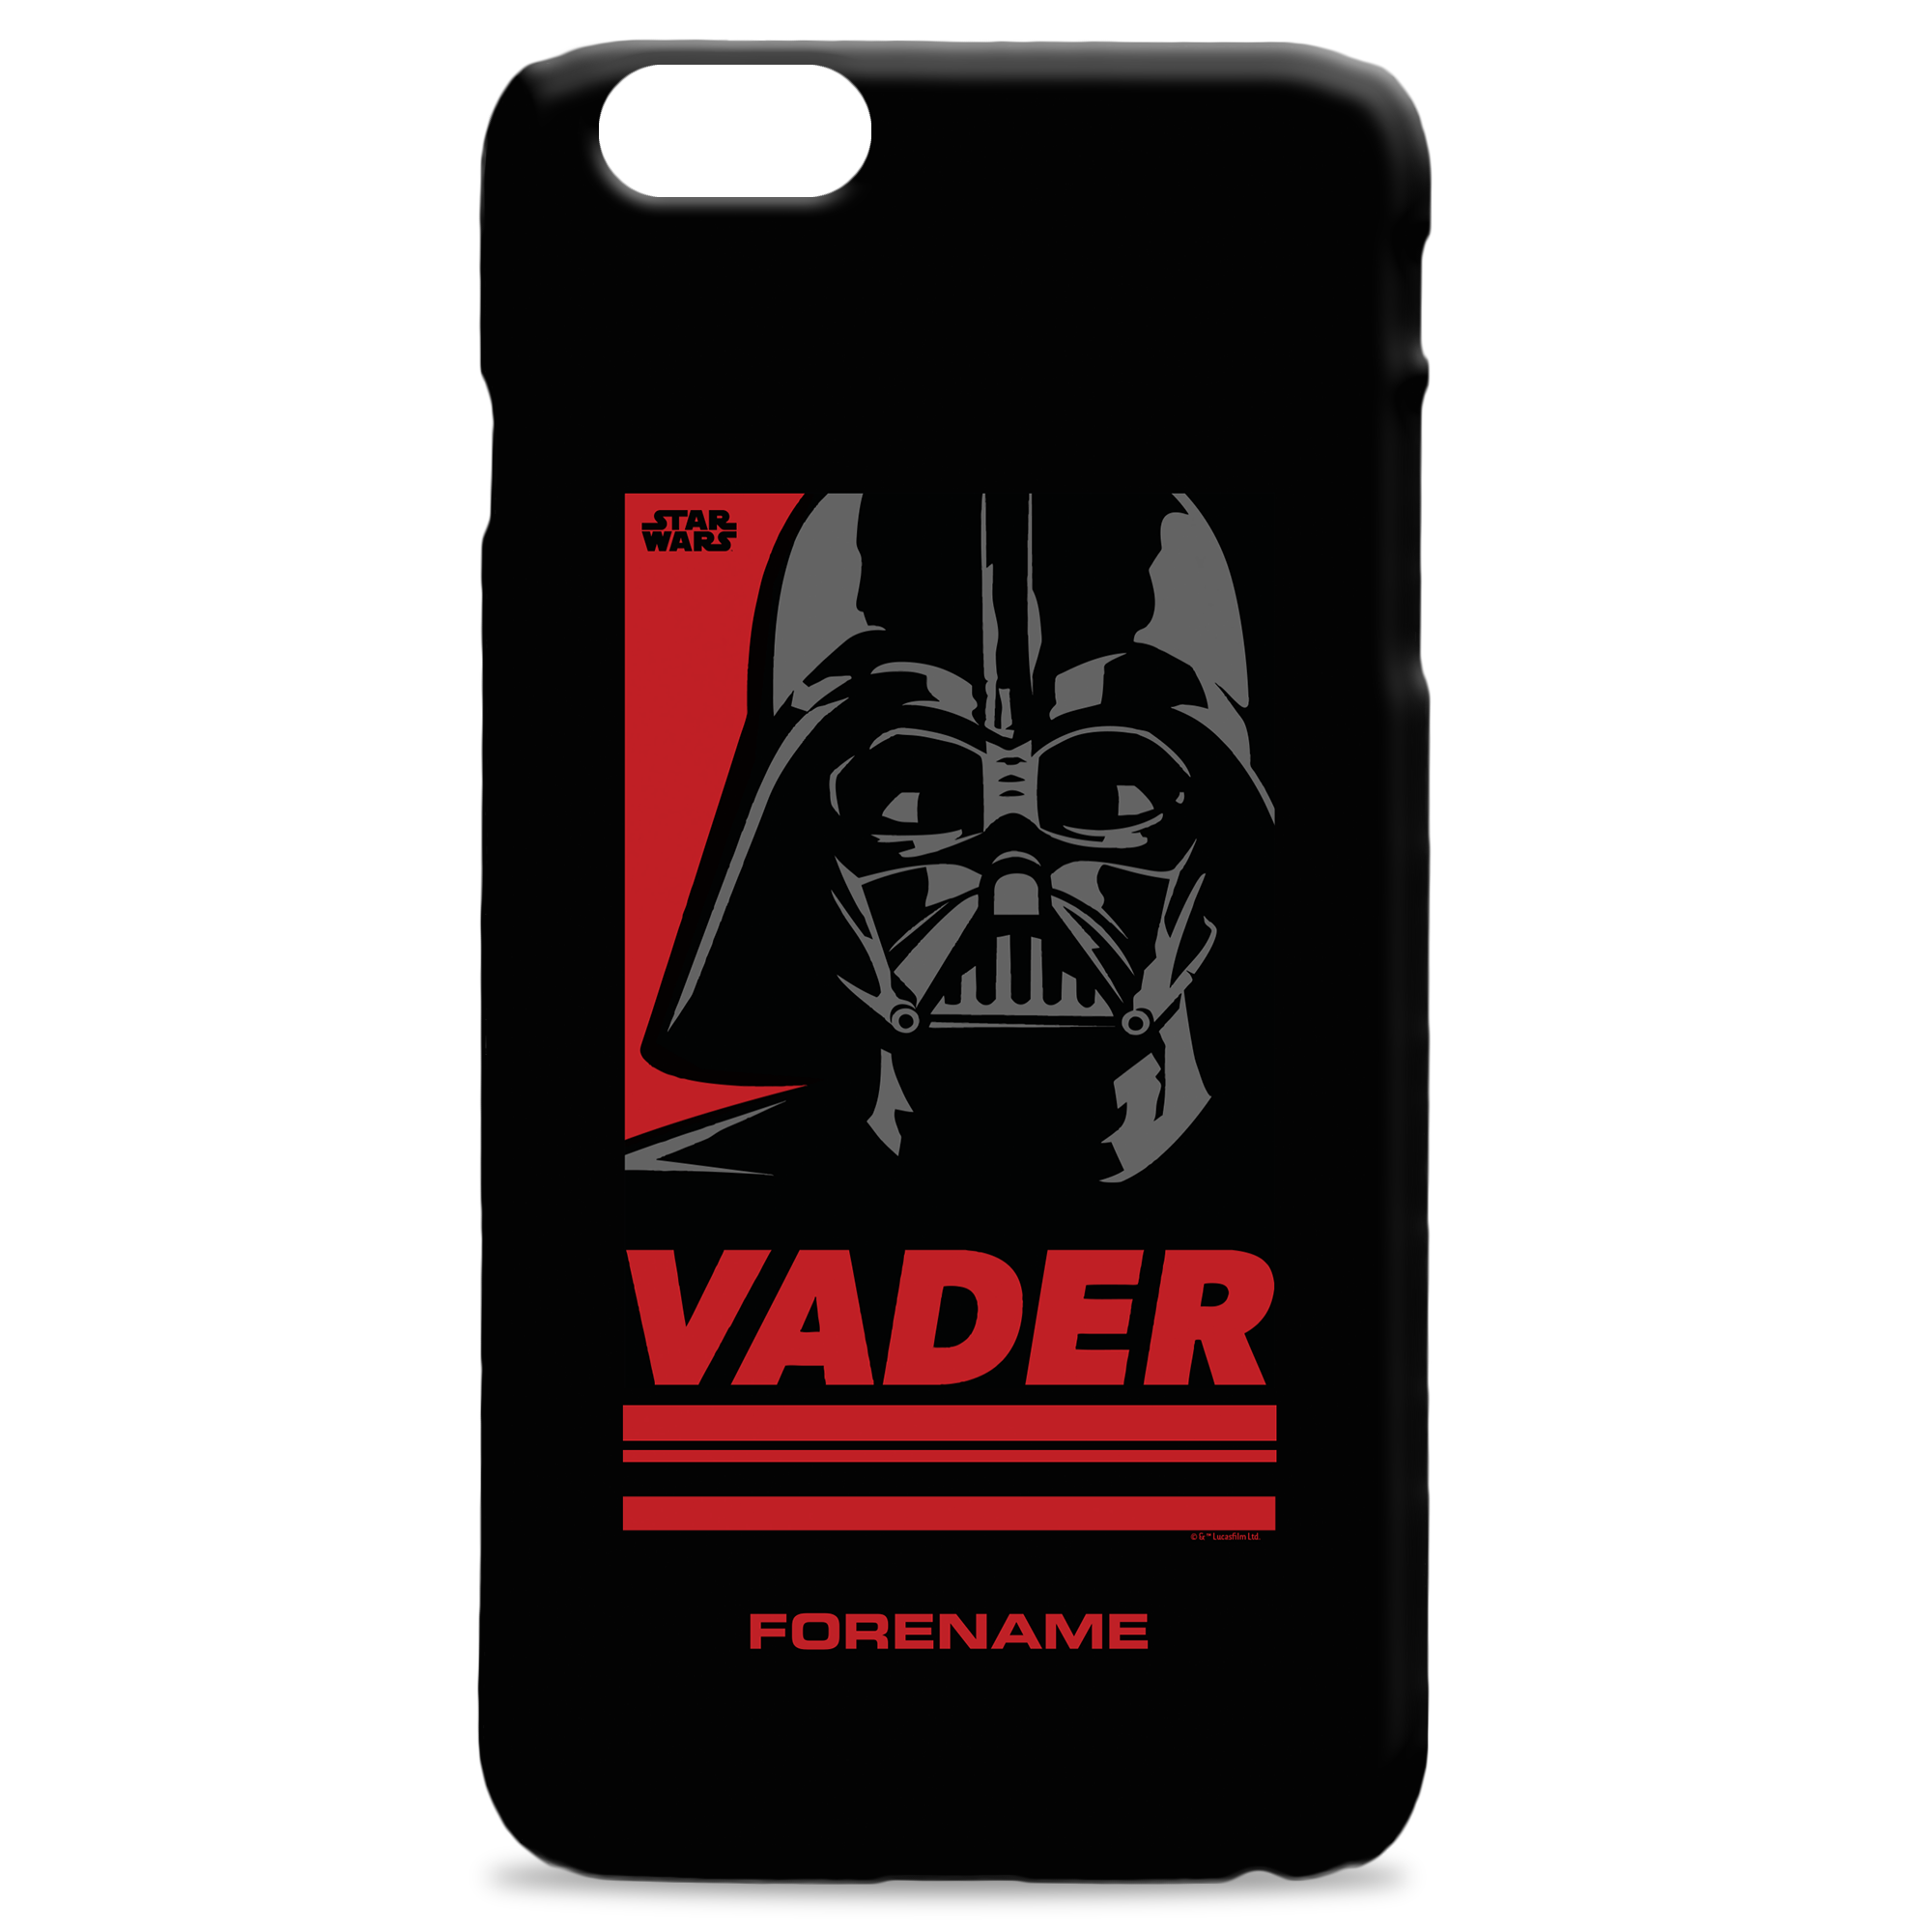 Star Wars Vader Pop Art Phone Case